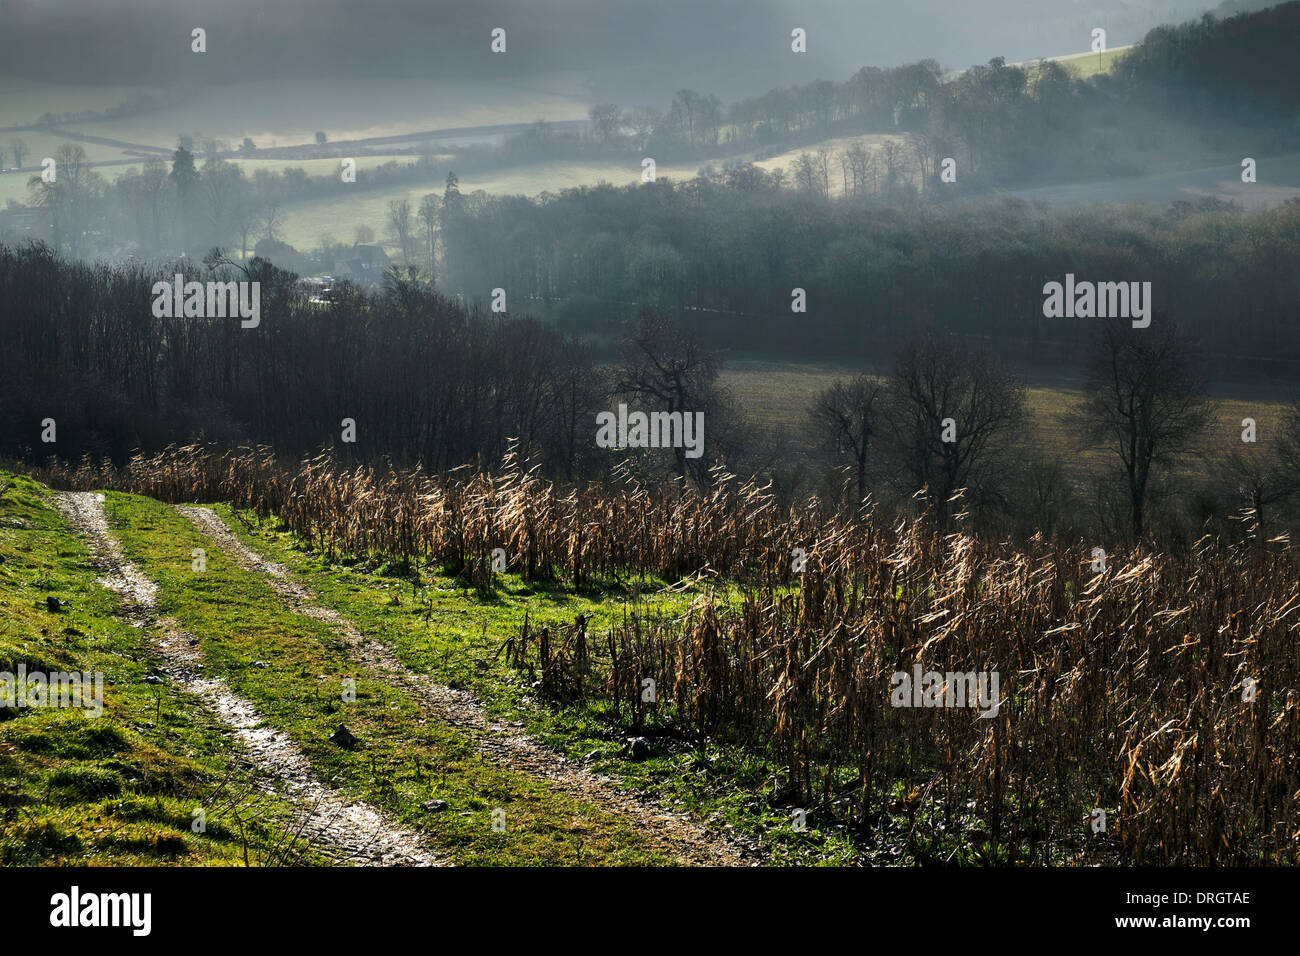 An atmospheric view of Hambleden Valley within Chilterns countryside, Bucks, UK. - Stock Image